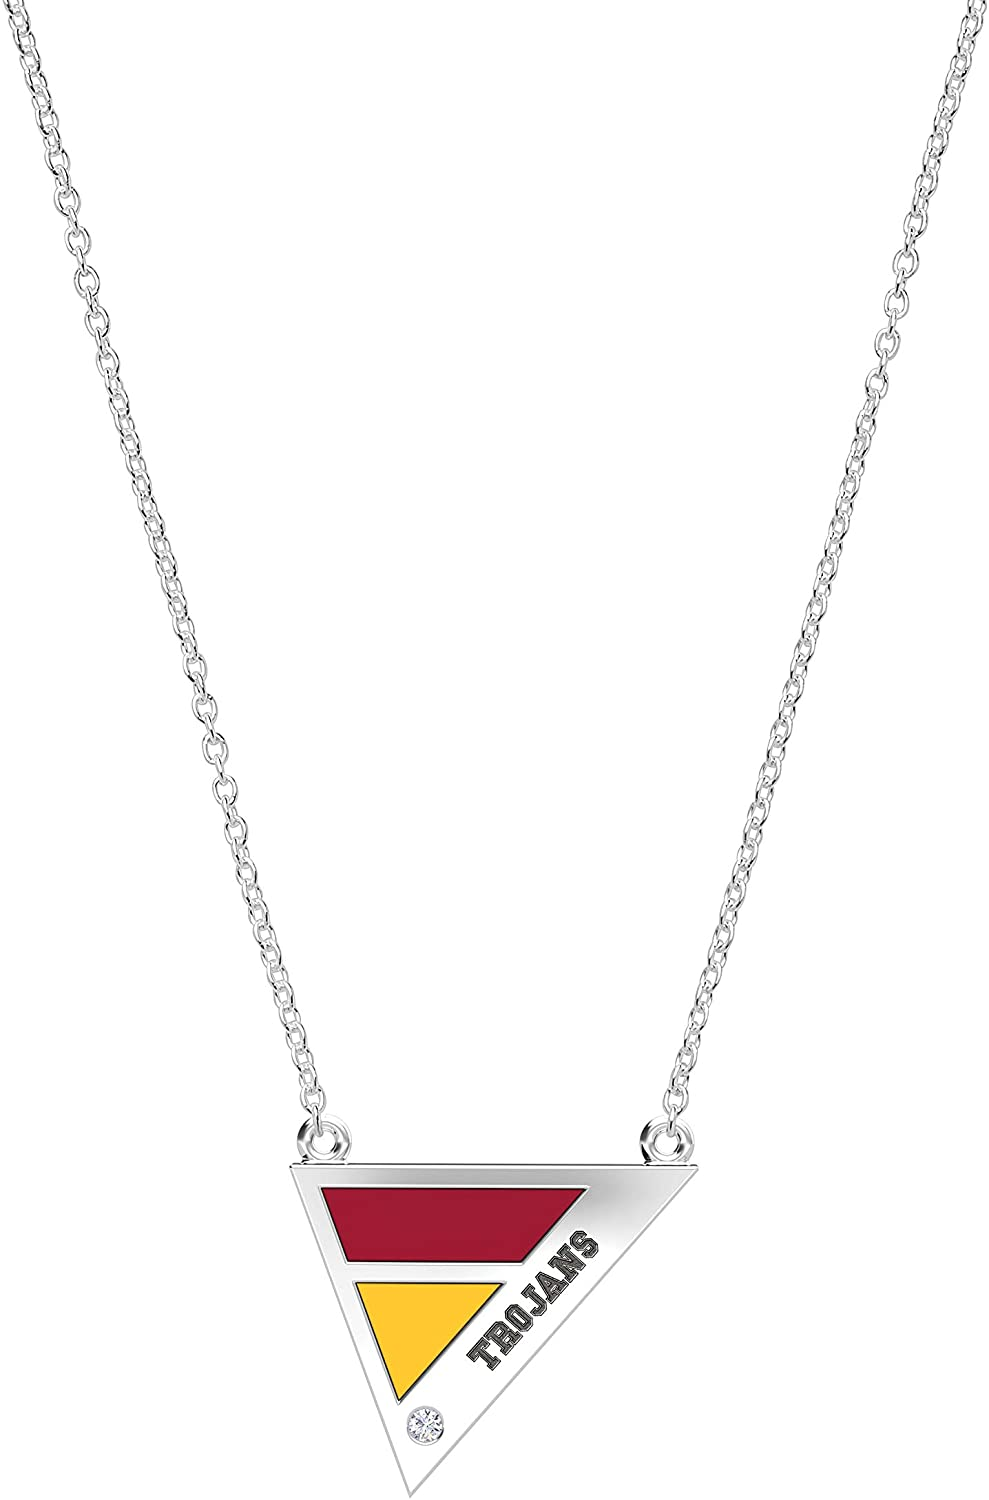 University of Southern California Engraved Sterling Silver Diamond Triple Station Necklace in Red & Yellow